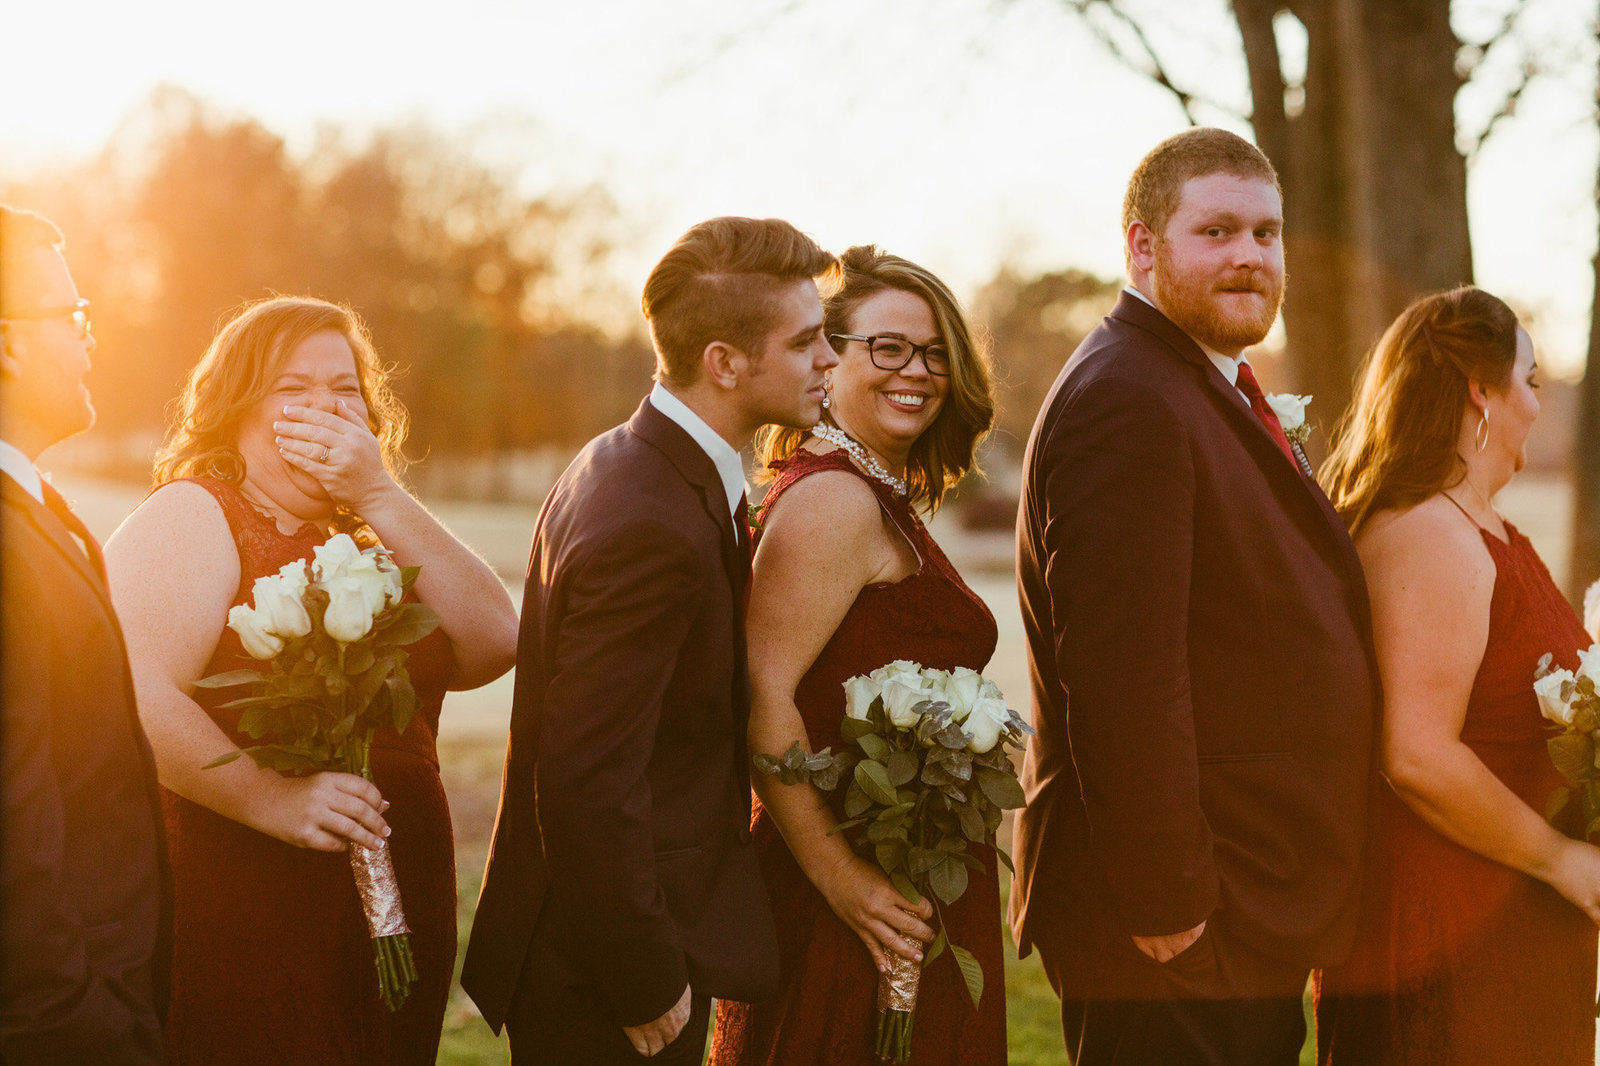 SaraLane-Stevie-Wedding-Photographers-Savannah-Jonathan-Nashville-Tennessee-Wedding-Photography-355